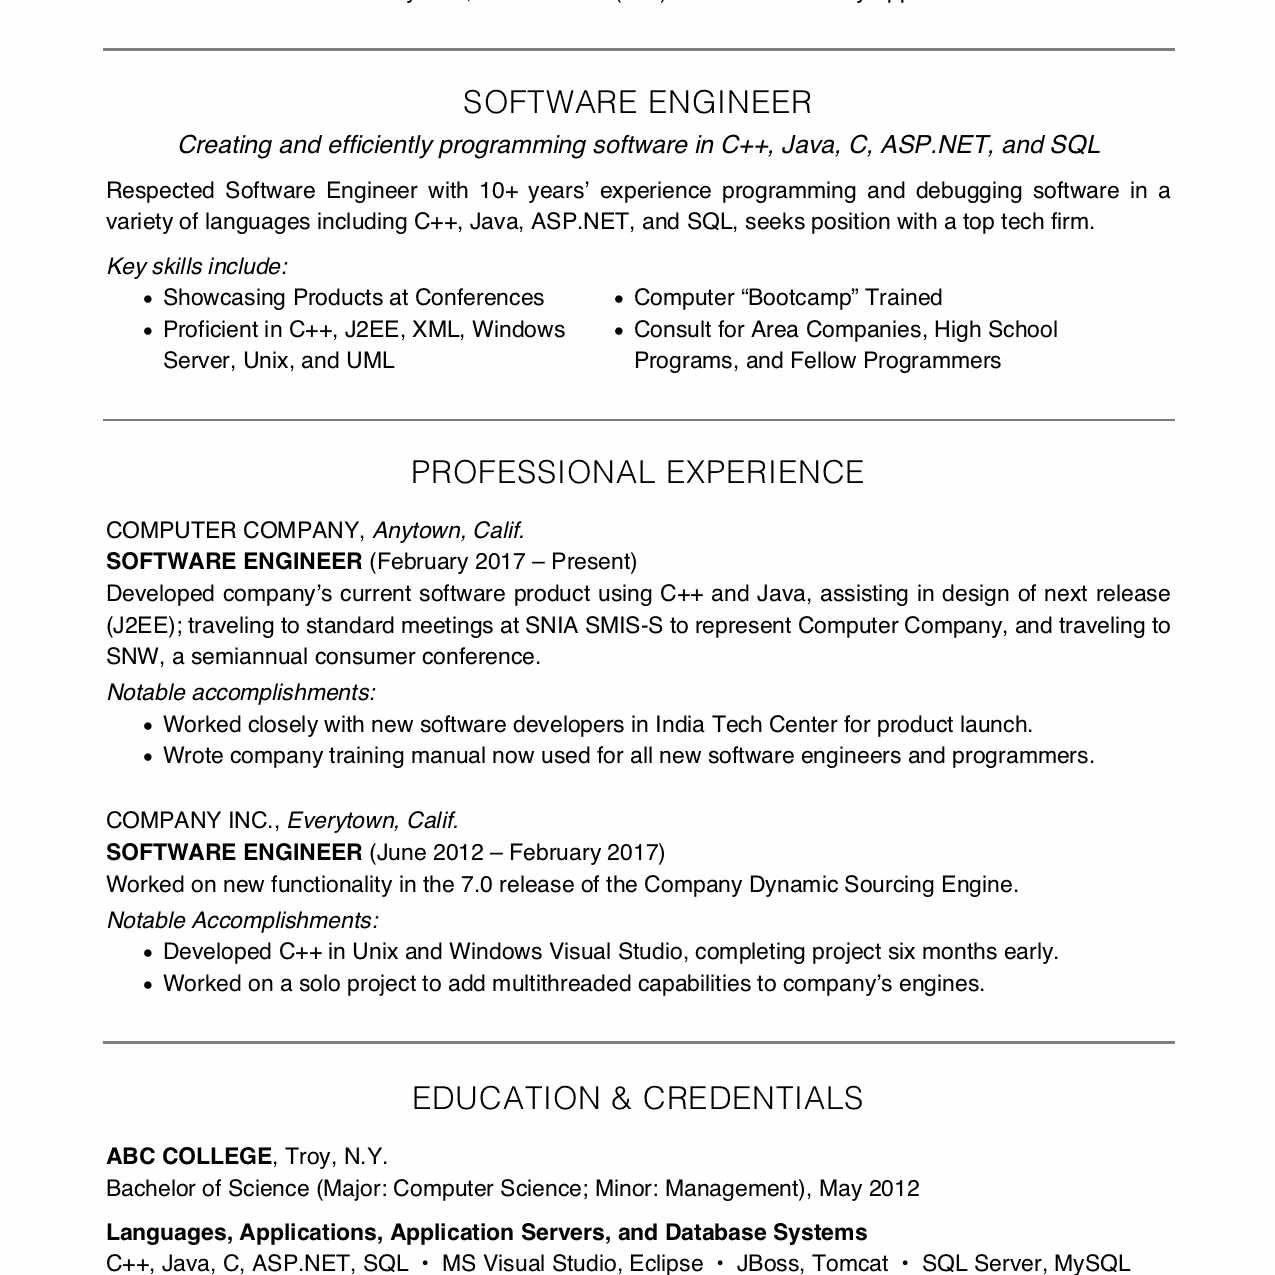 Screenshot of a resume for a software engineer or computer programmer